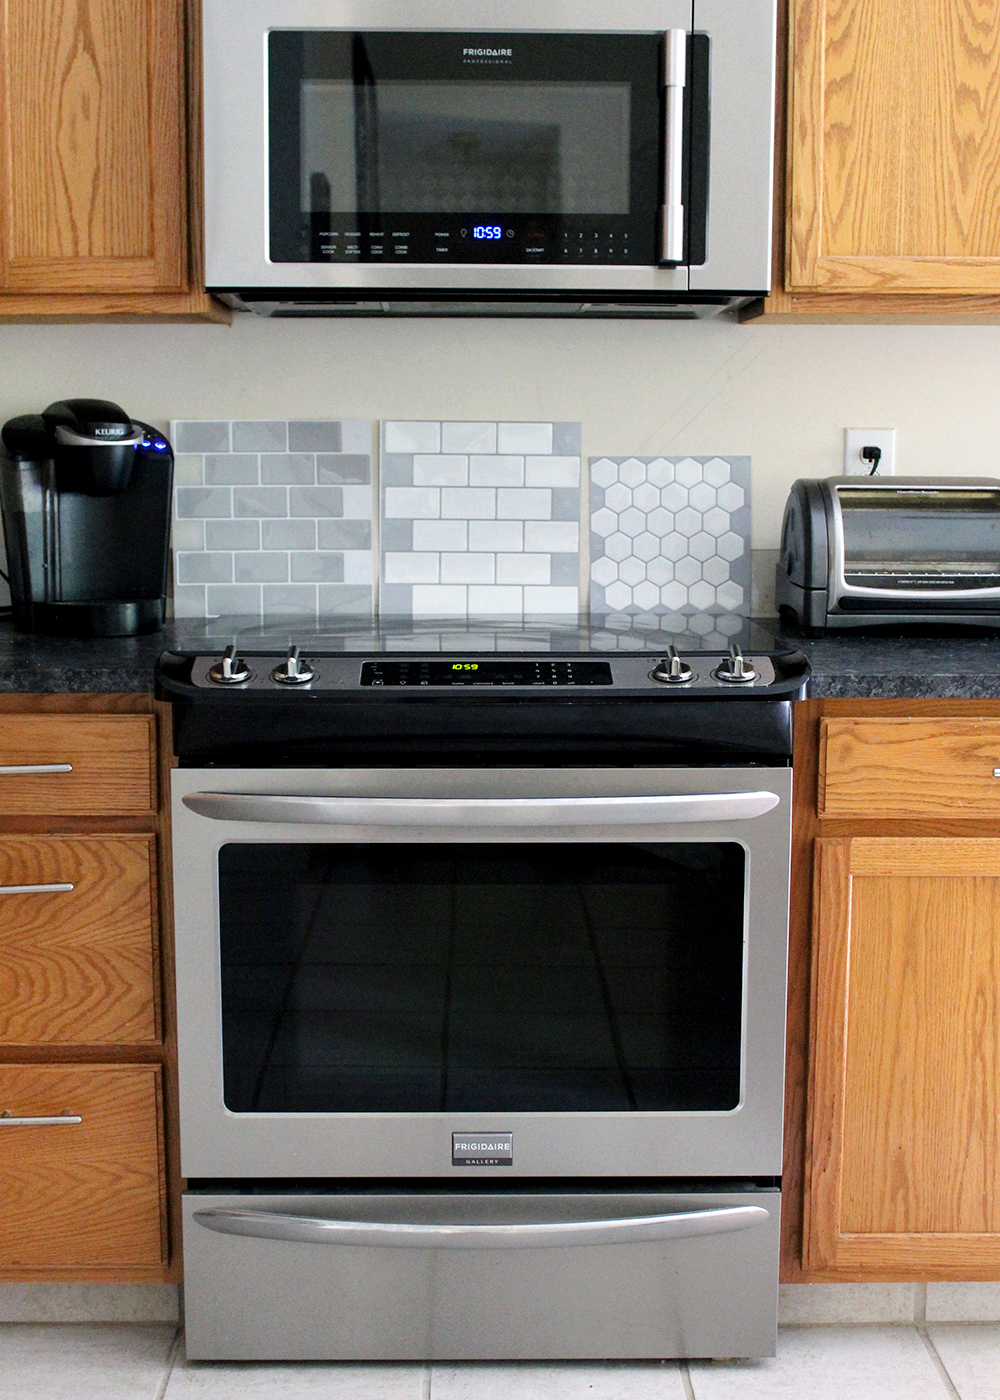 a temporary backsplash option: Peel and Stick Tiles. I love that these are DIY friendly and you don't need a tile cutter!